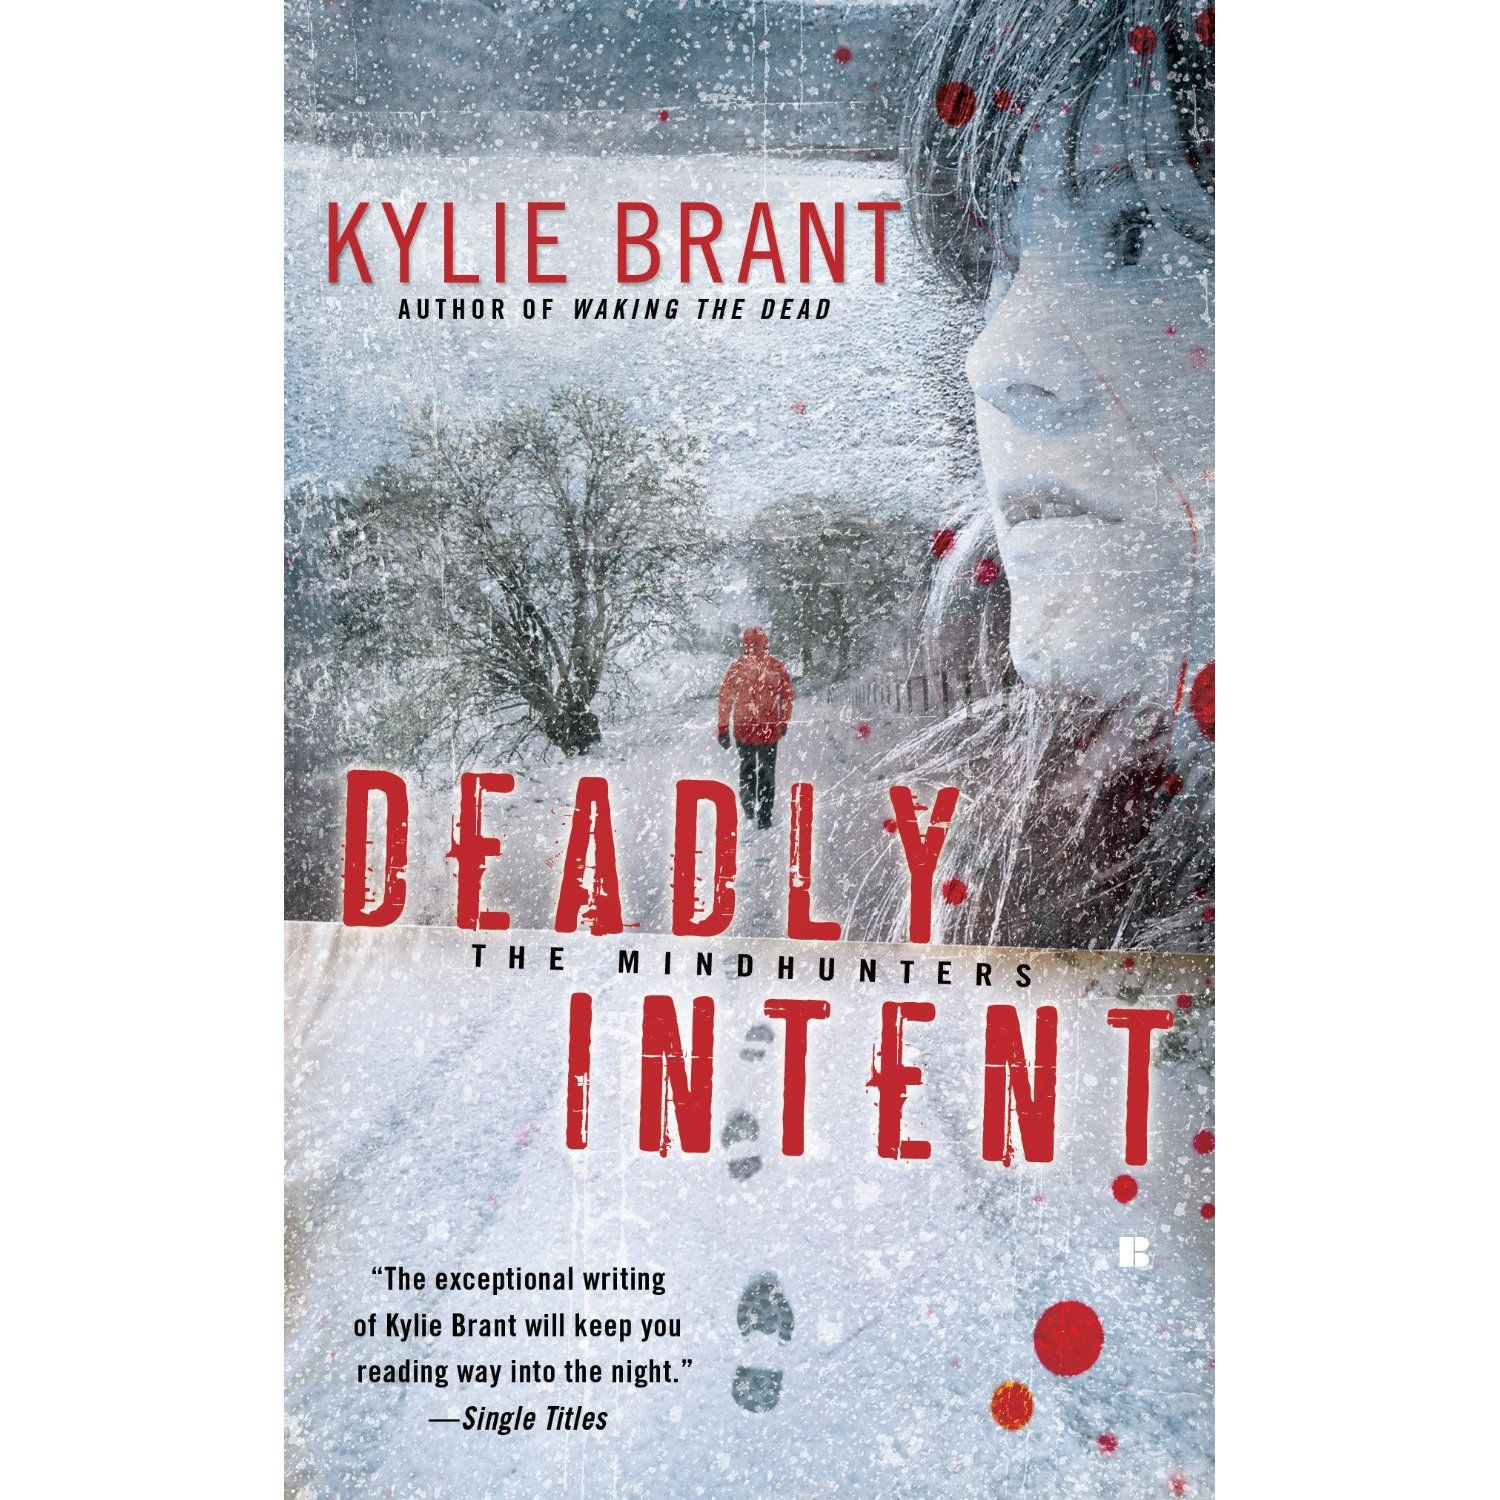 Deadly intent mindhunters ebook kylie brant